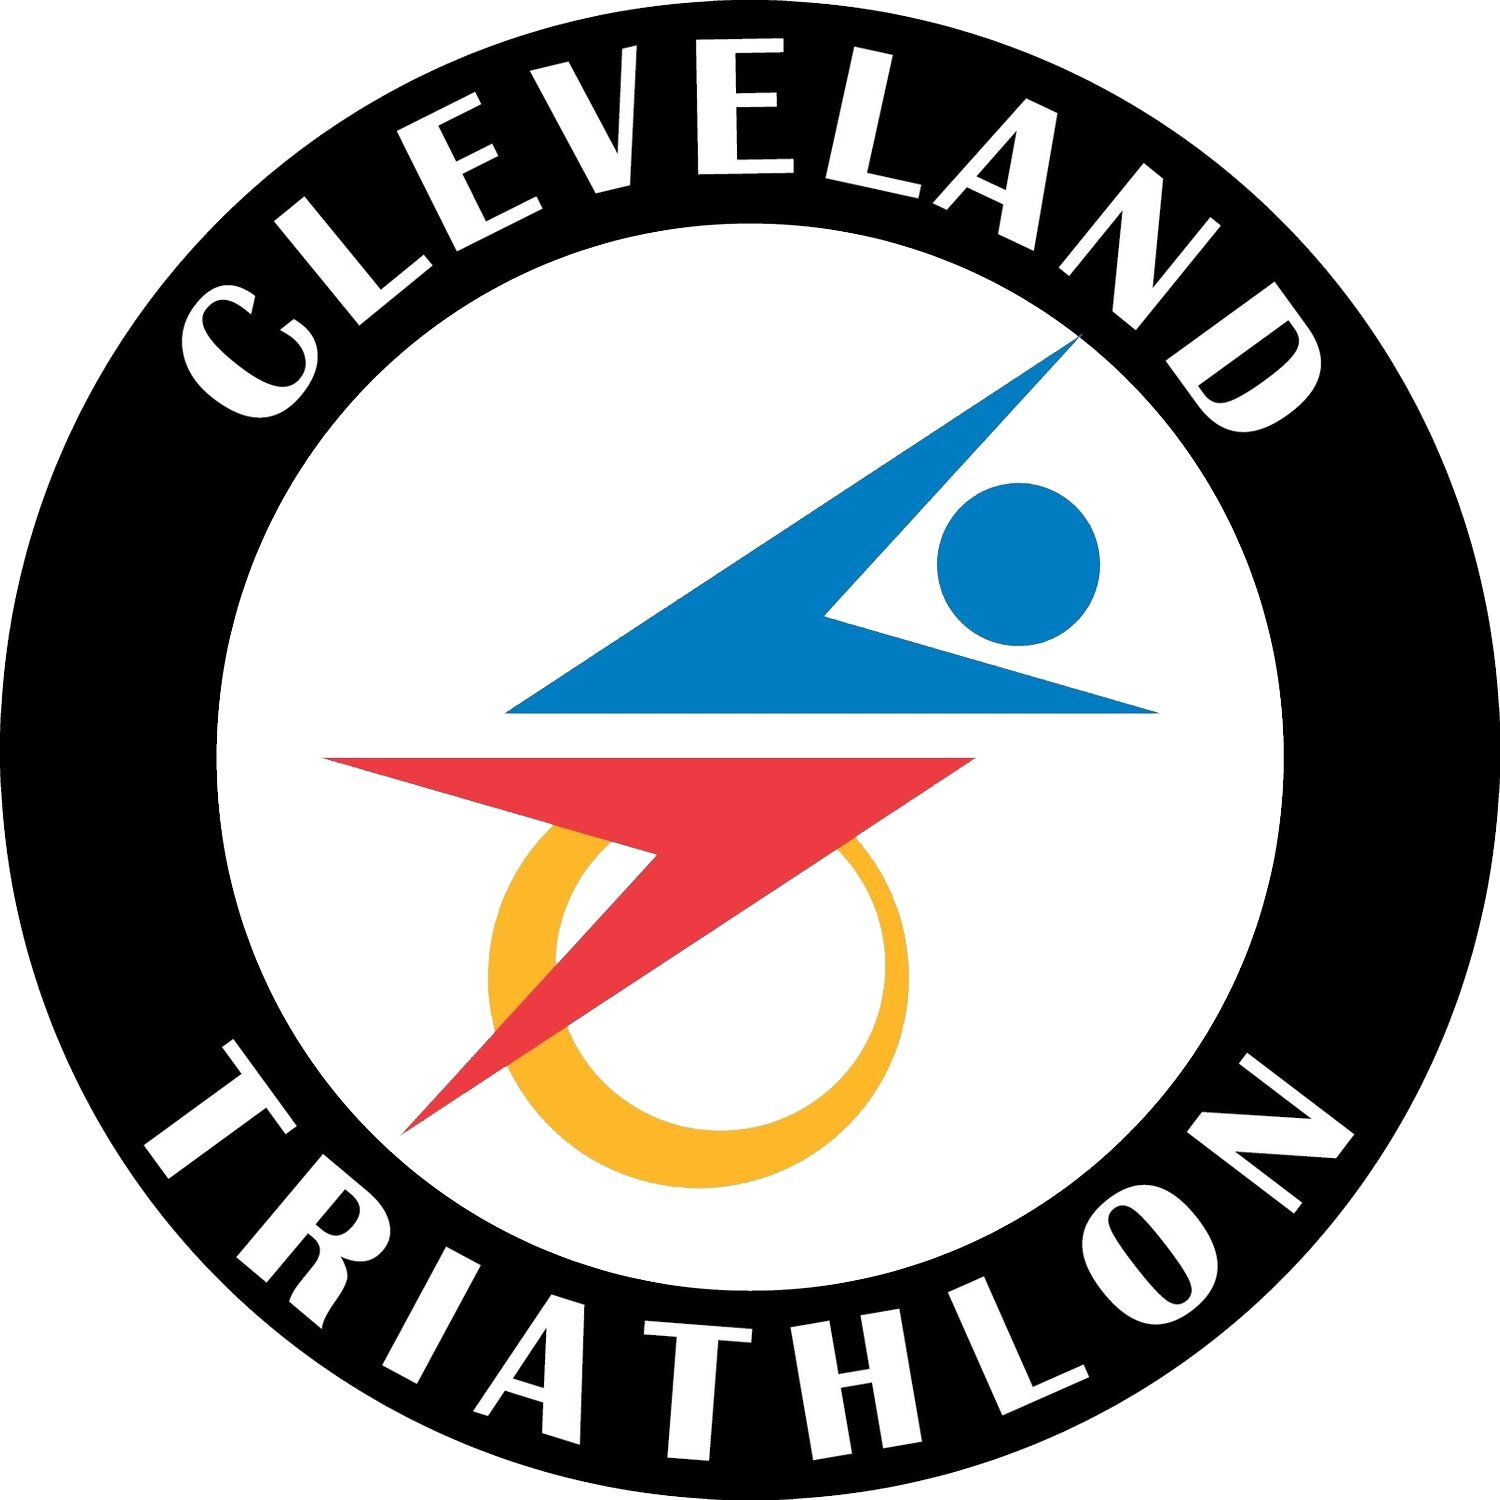 The Cleveland Triathlon